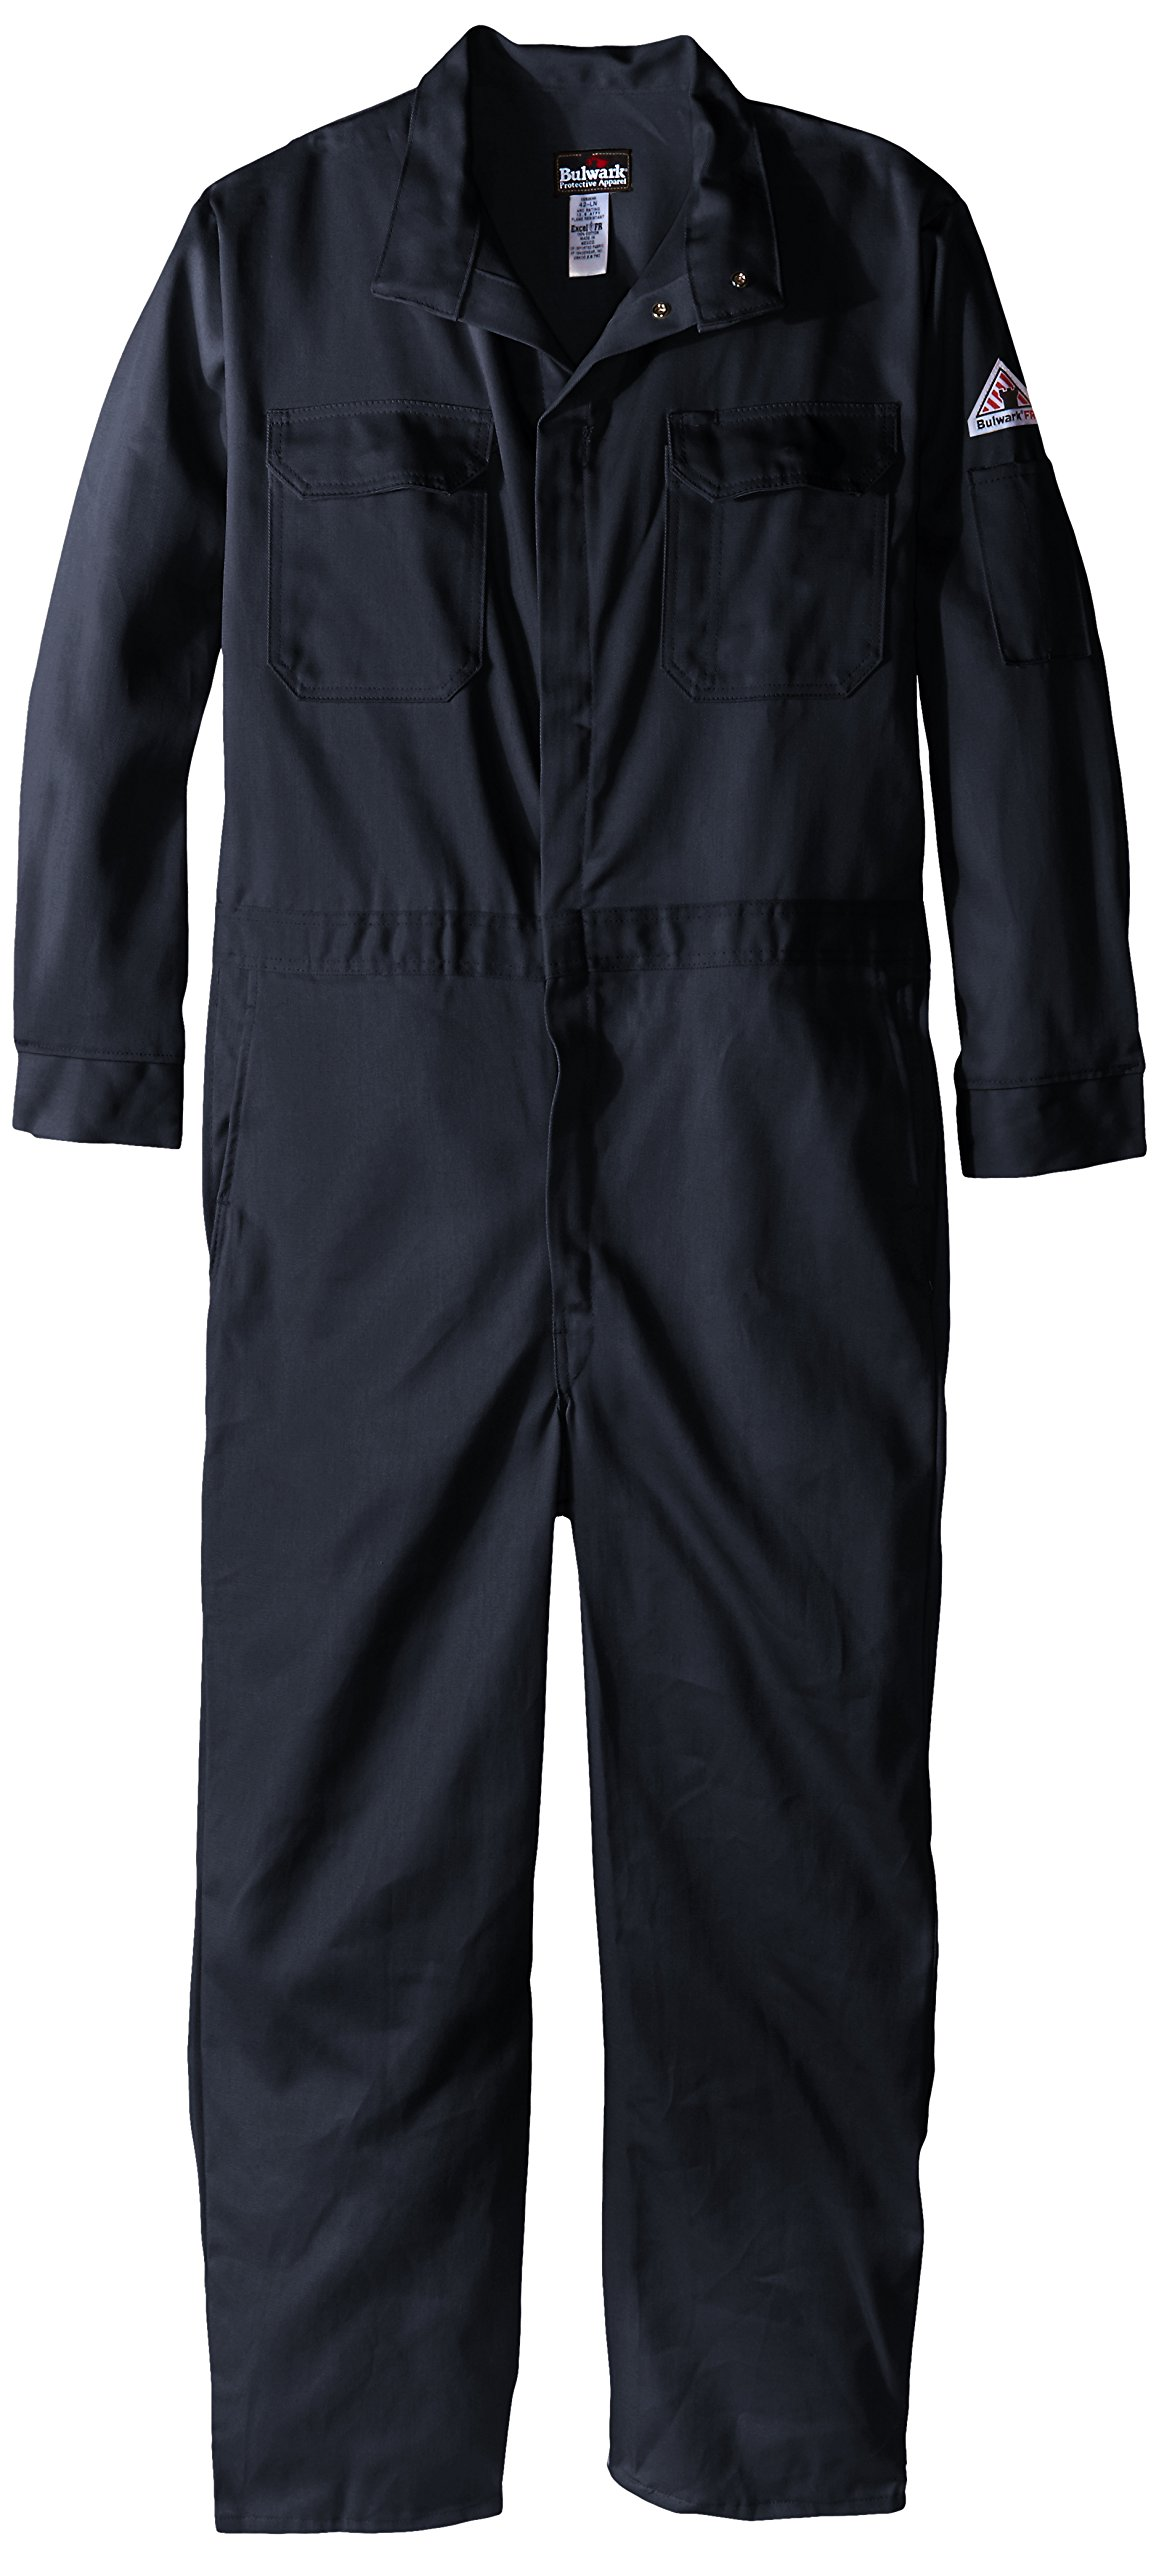 Bulwark Flame Resistant 9 oz Twill Cotton Premium Concealed Snap Coverall, Navy, 40